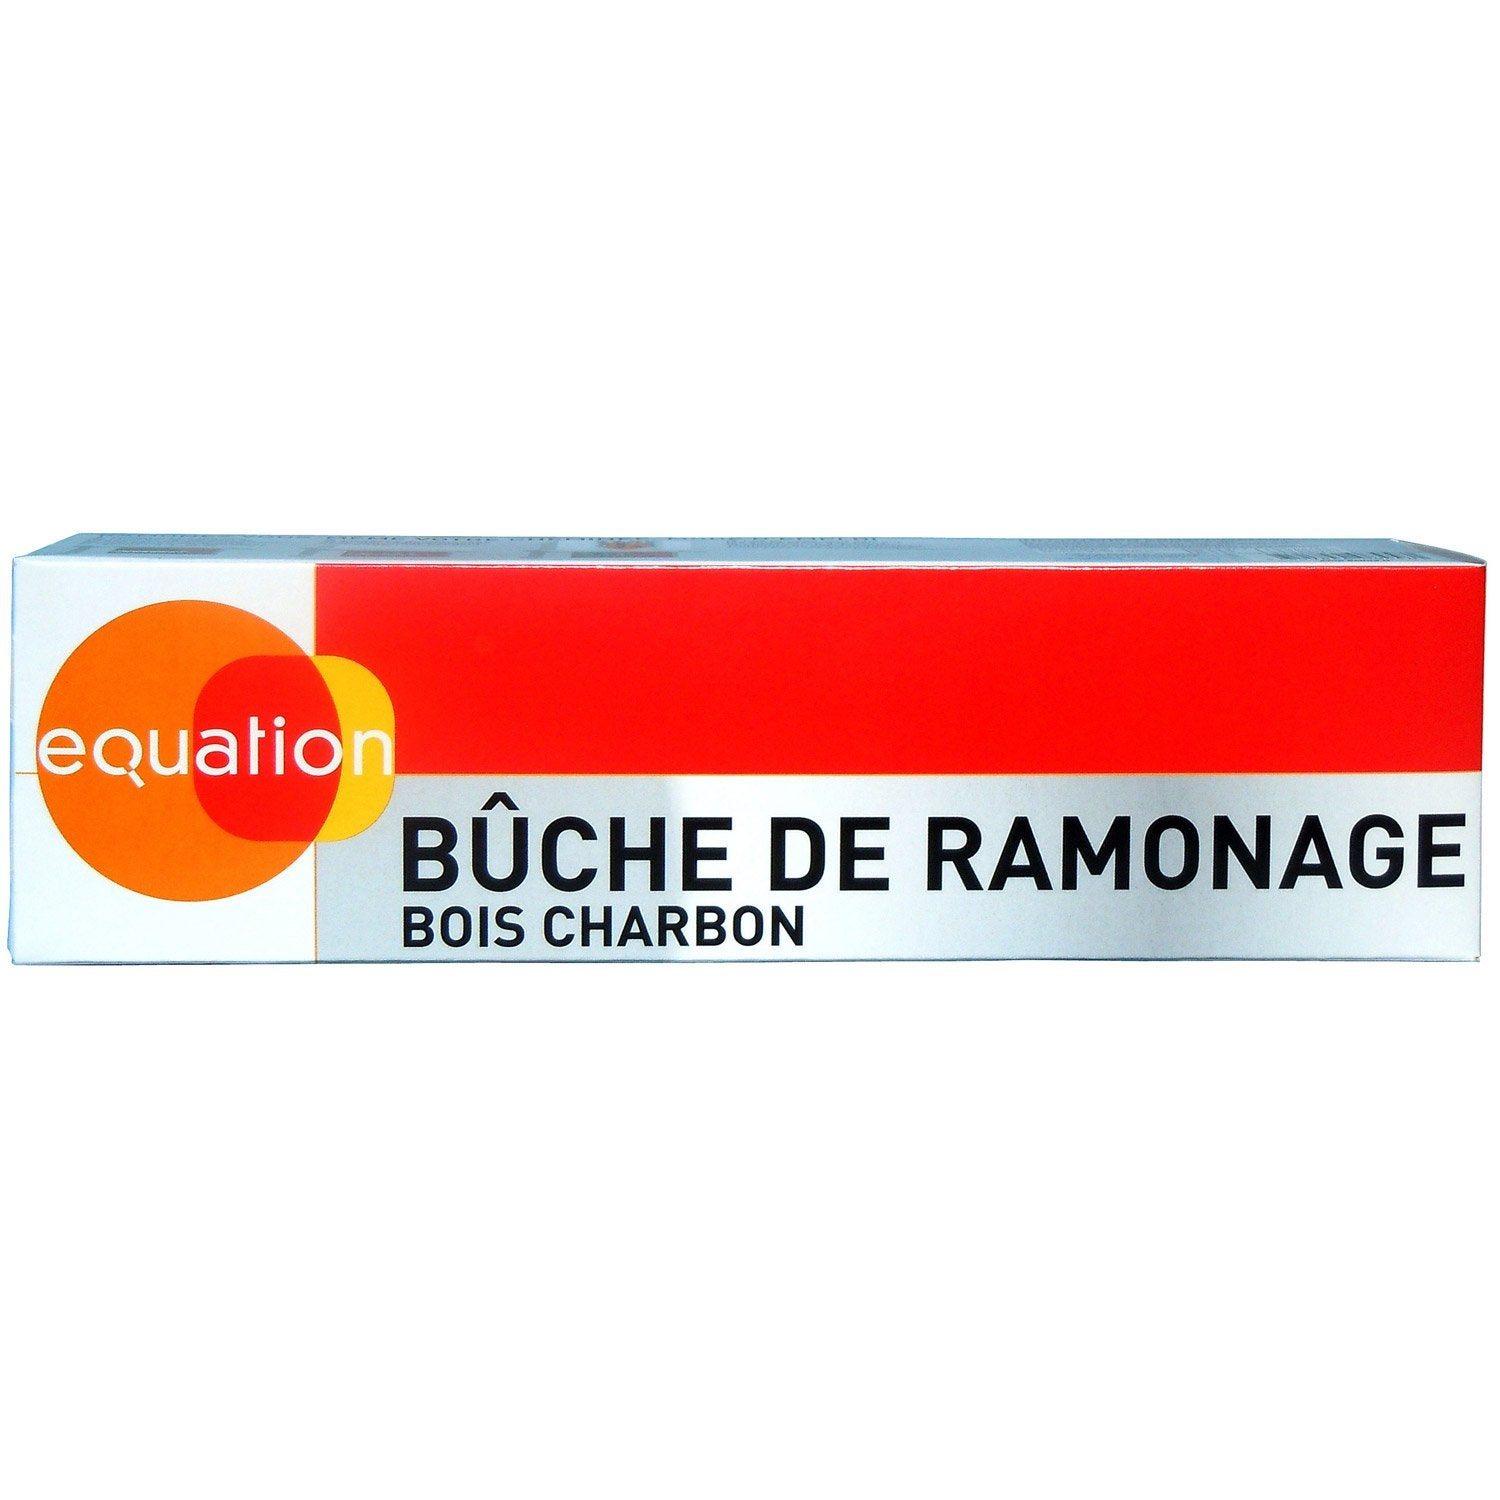 Buche de ramonage avec leroy merlin brico depot - Buche de ramonage avis ...